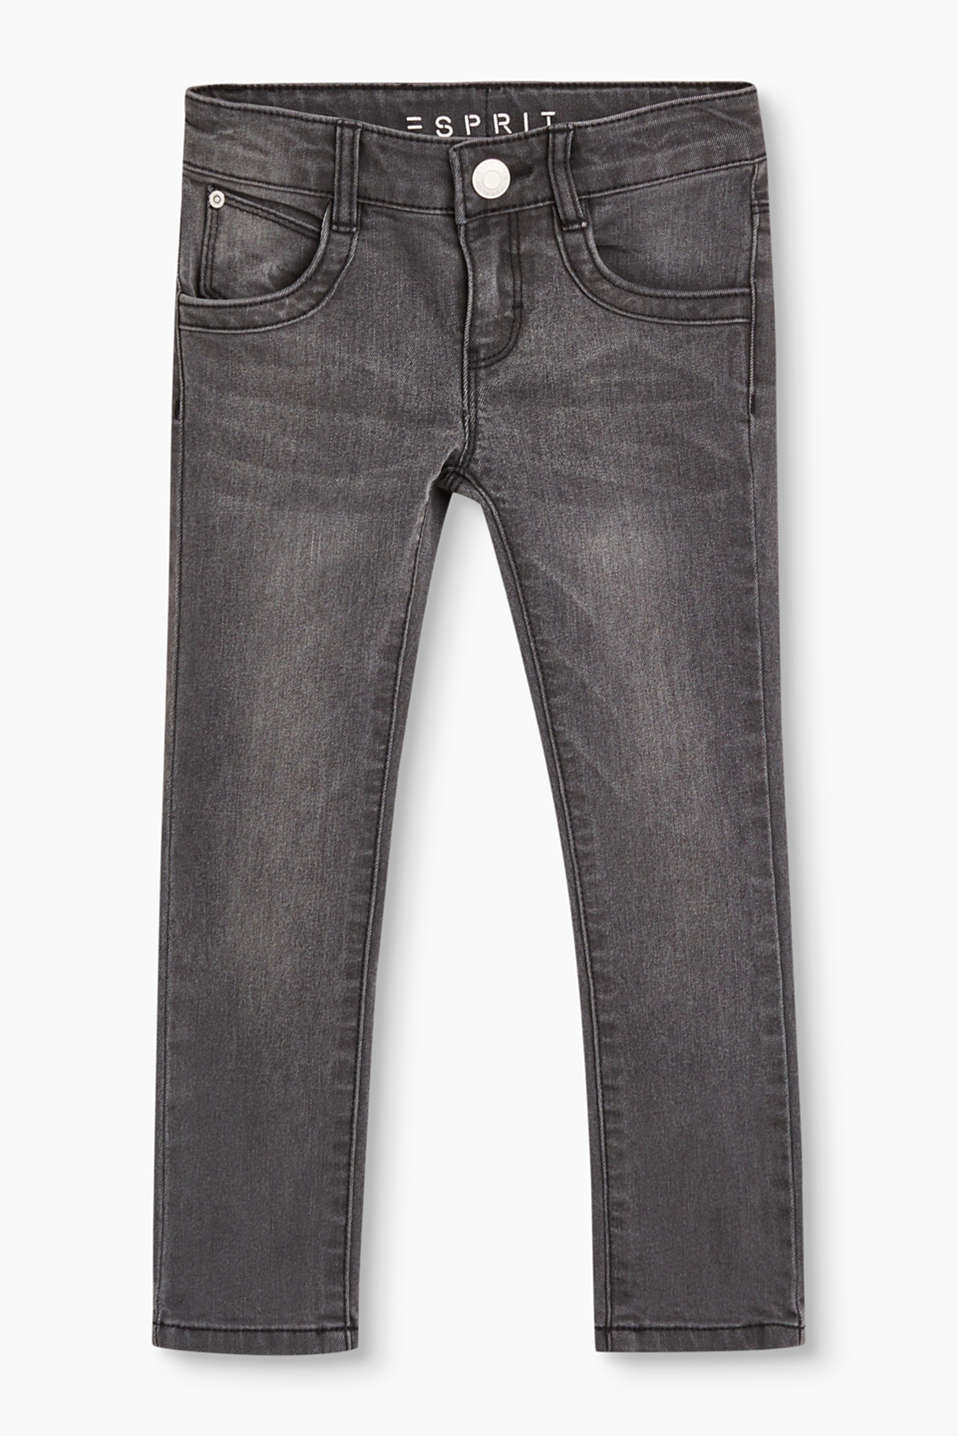 In a cool grey tone: narrow stretch denim jeans with silver piping on the back pockets.